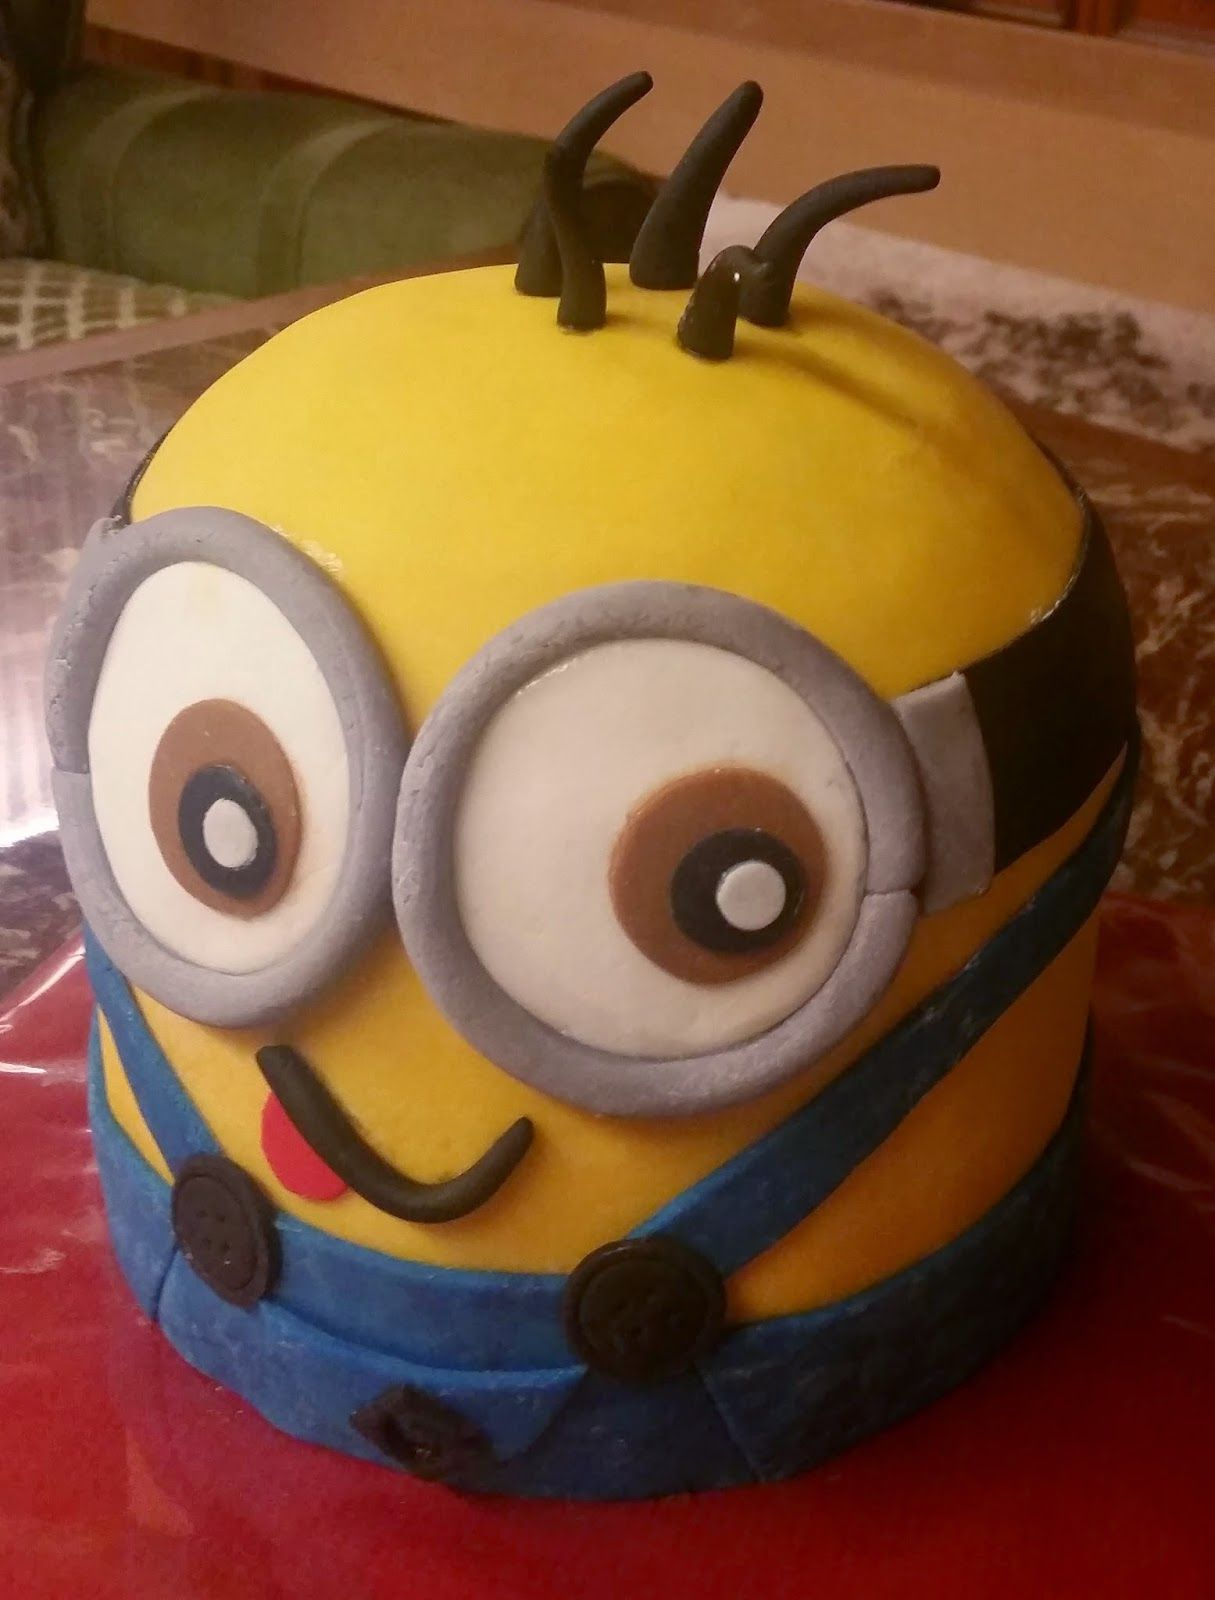 Minion Kuchen Rezept Sandy 39s Kitchendreams Minion Kuchen Minions Pinterest